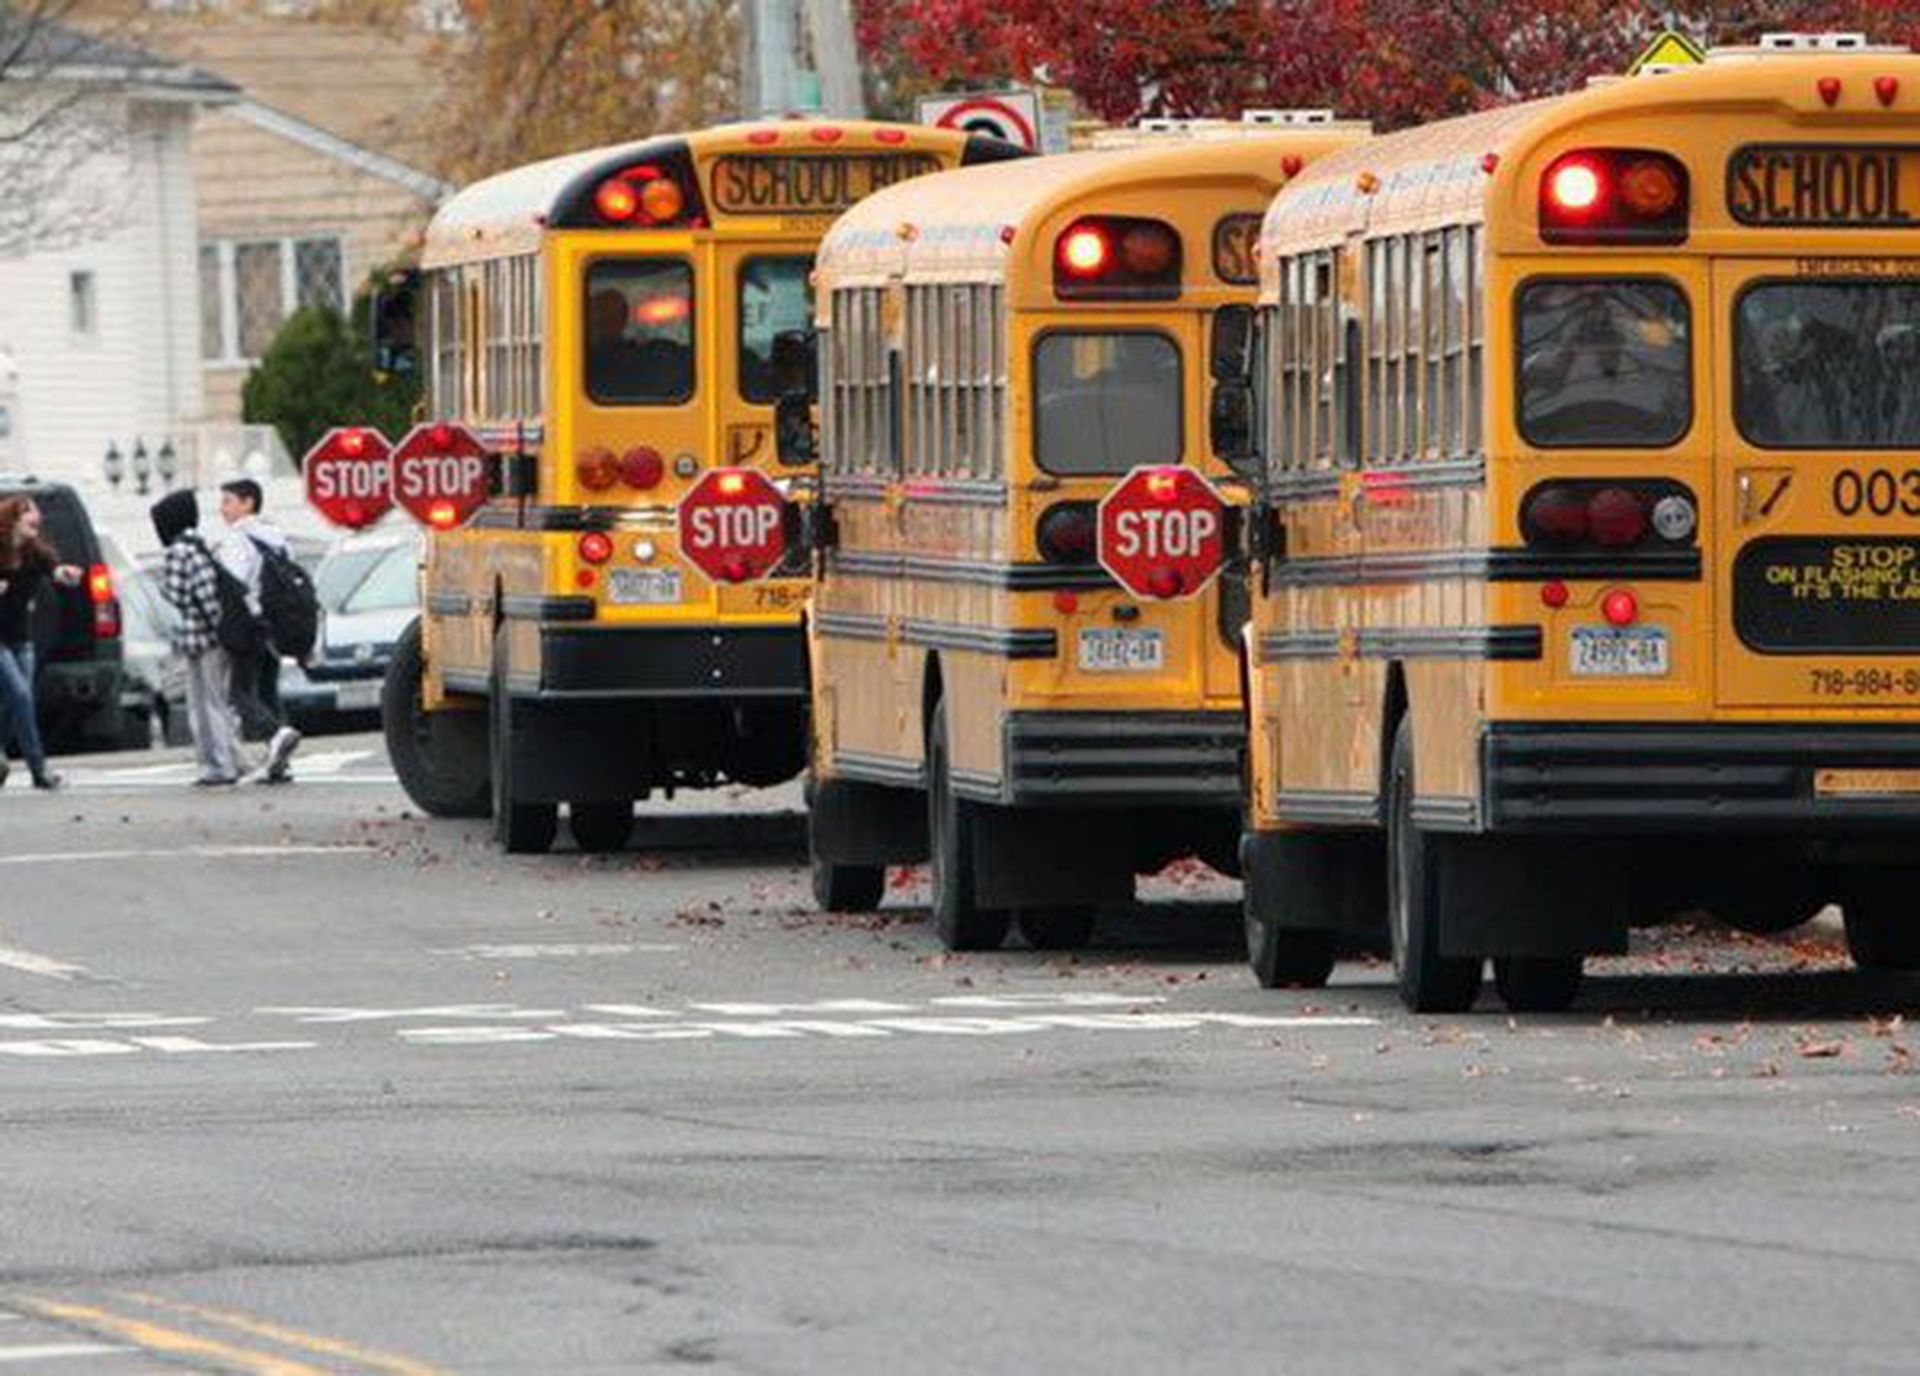 Right of Way Rules for School Buses